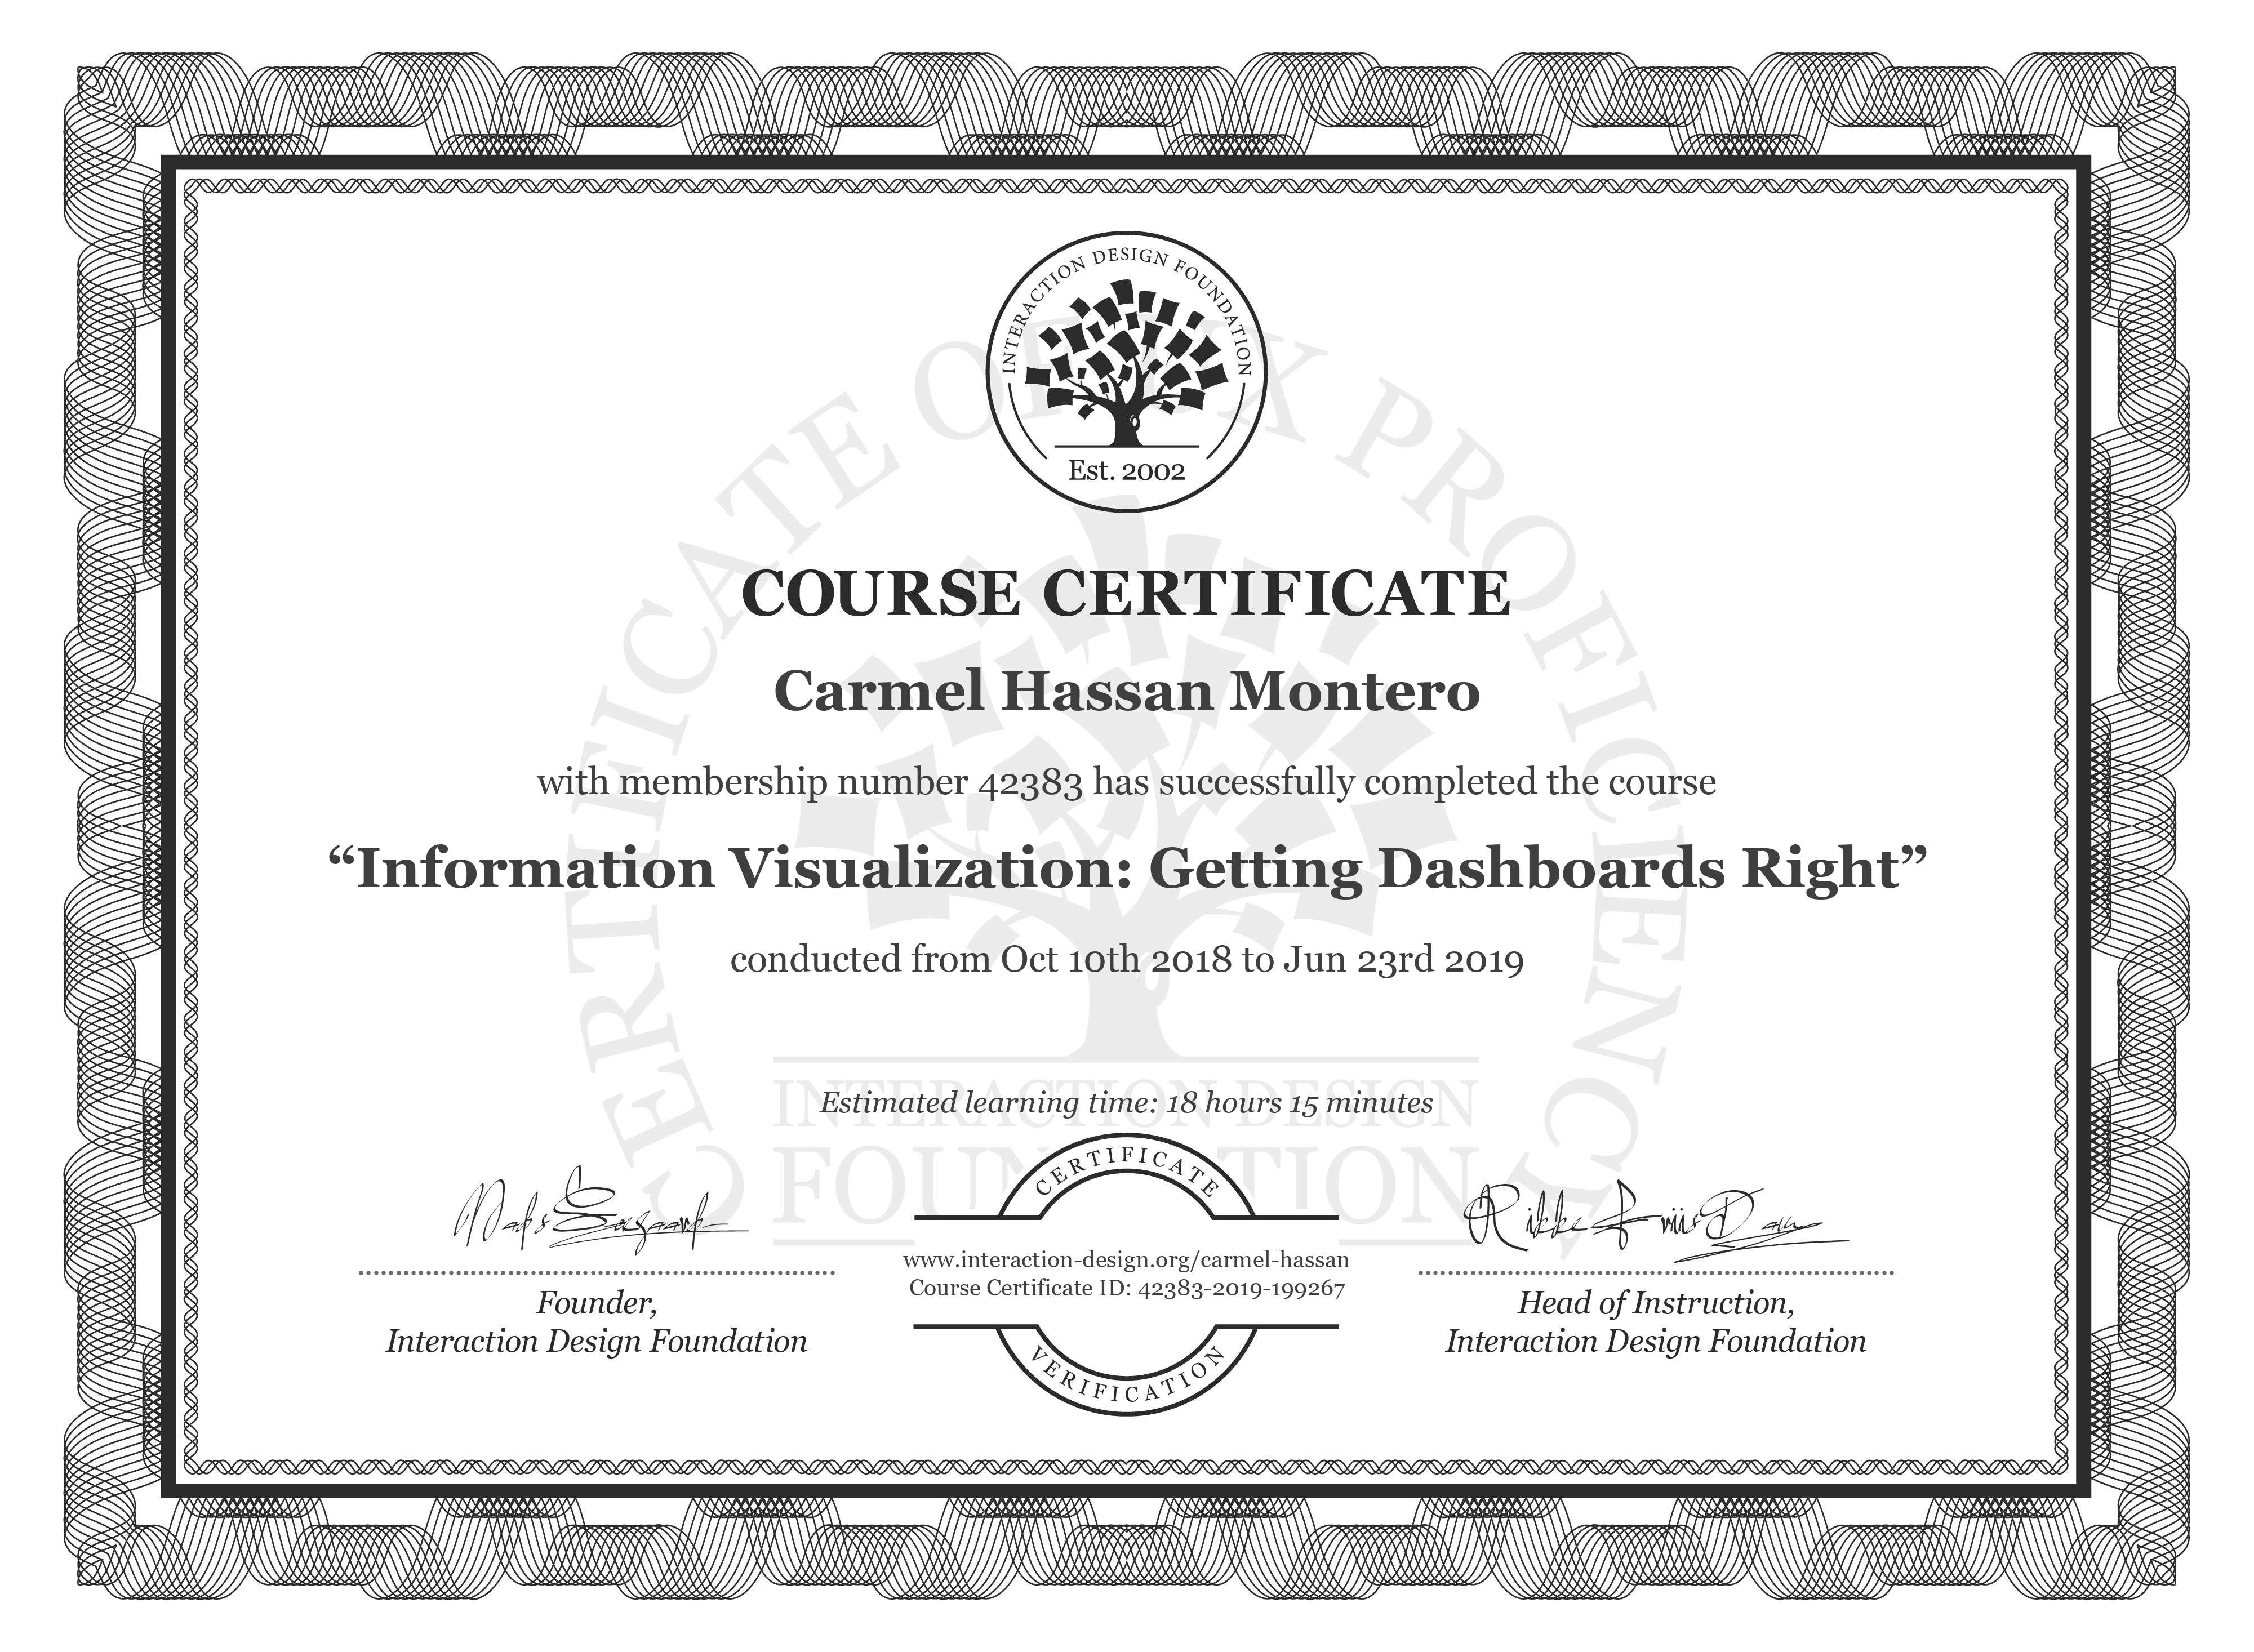 Carmel Hassan Montero's Course Certificate: Information Visualization: Getting Dashboards Right